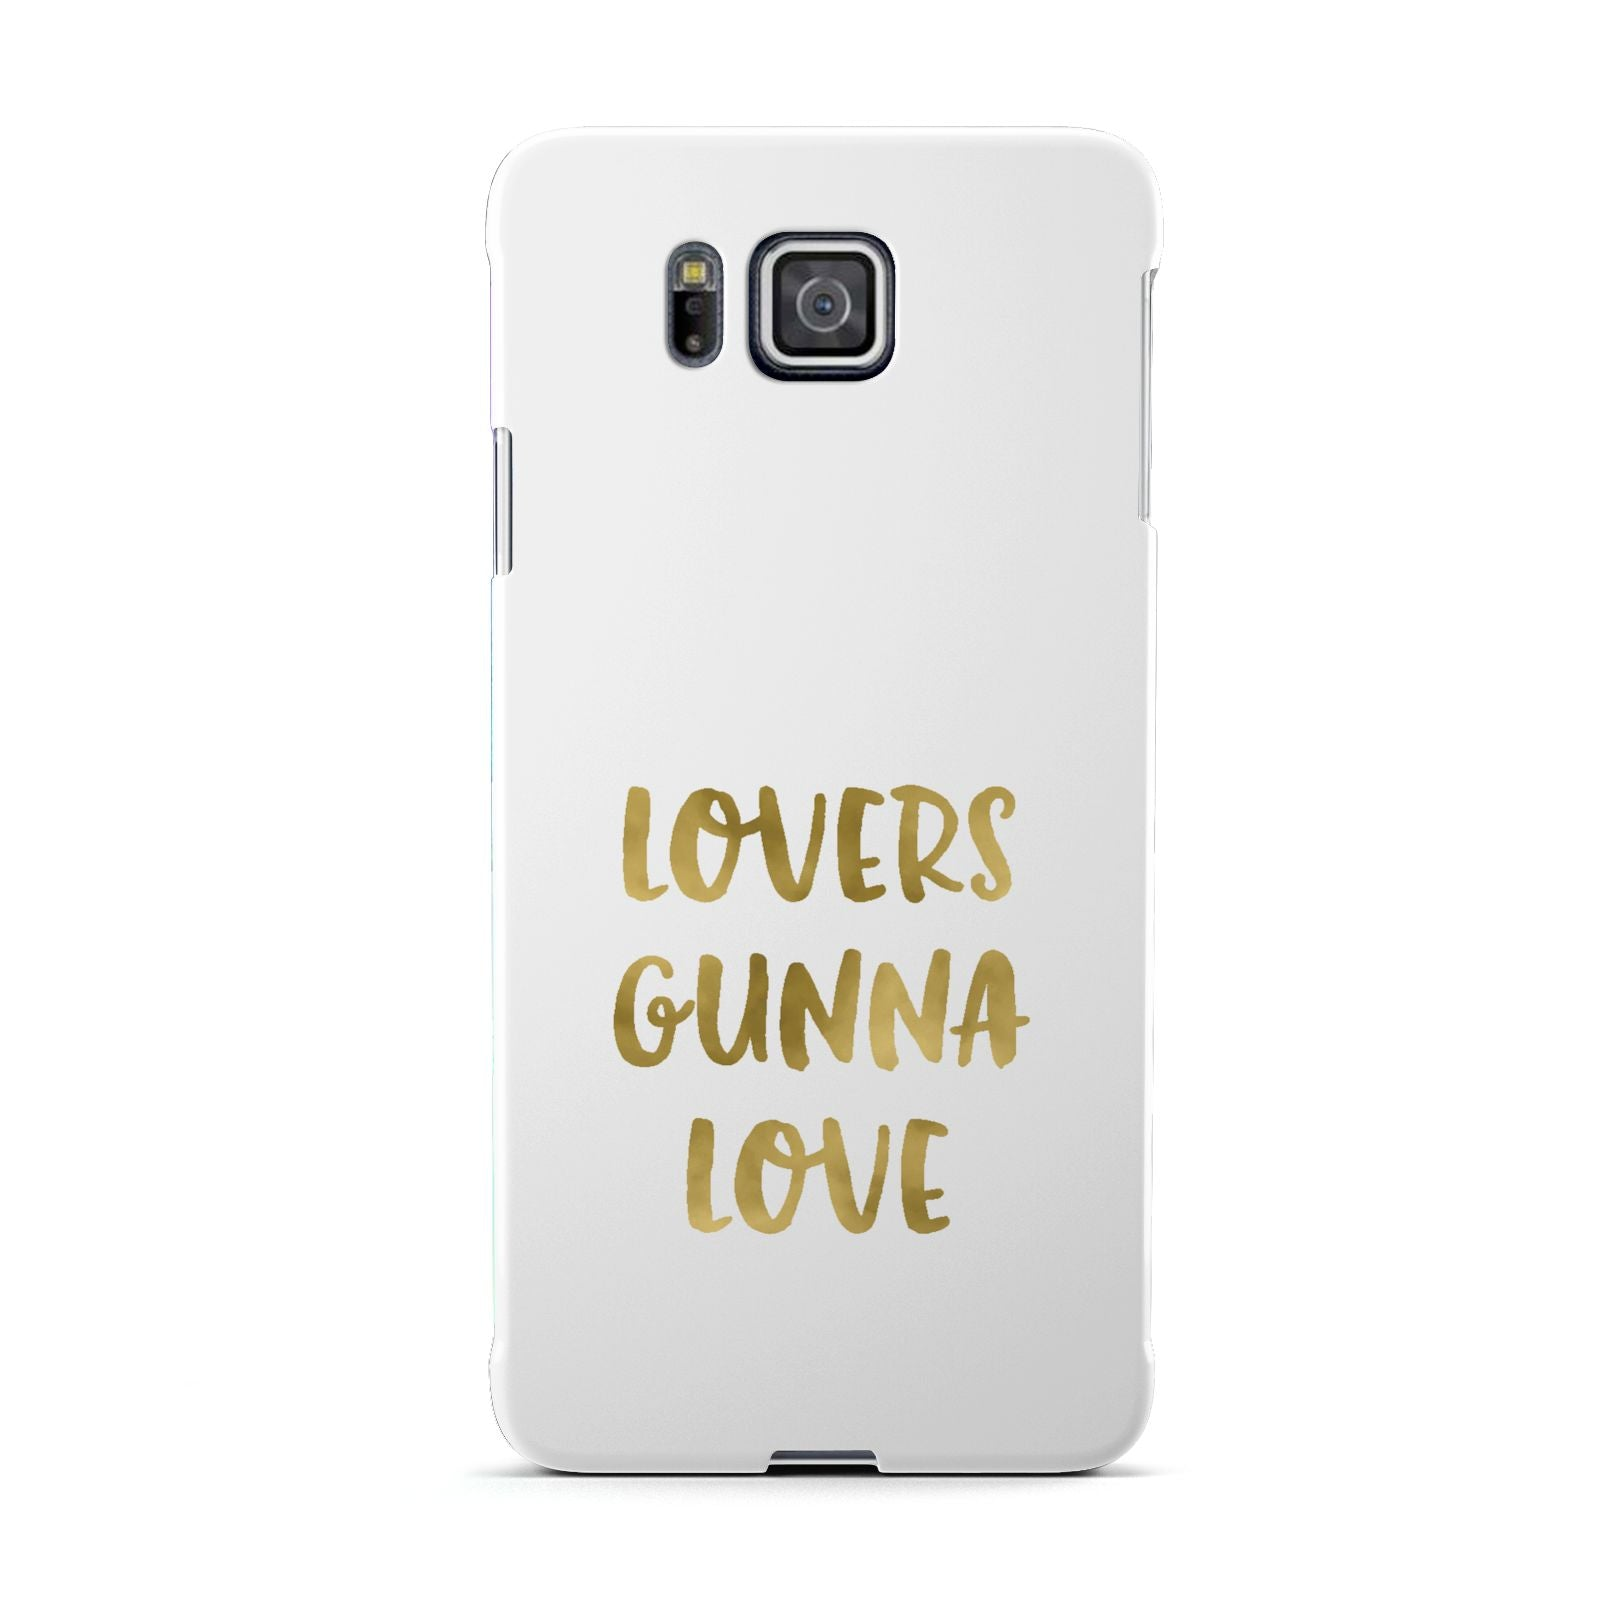 Lovers Gunna Love Real Gold Foil Samsung Galaxy Alpha Case